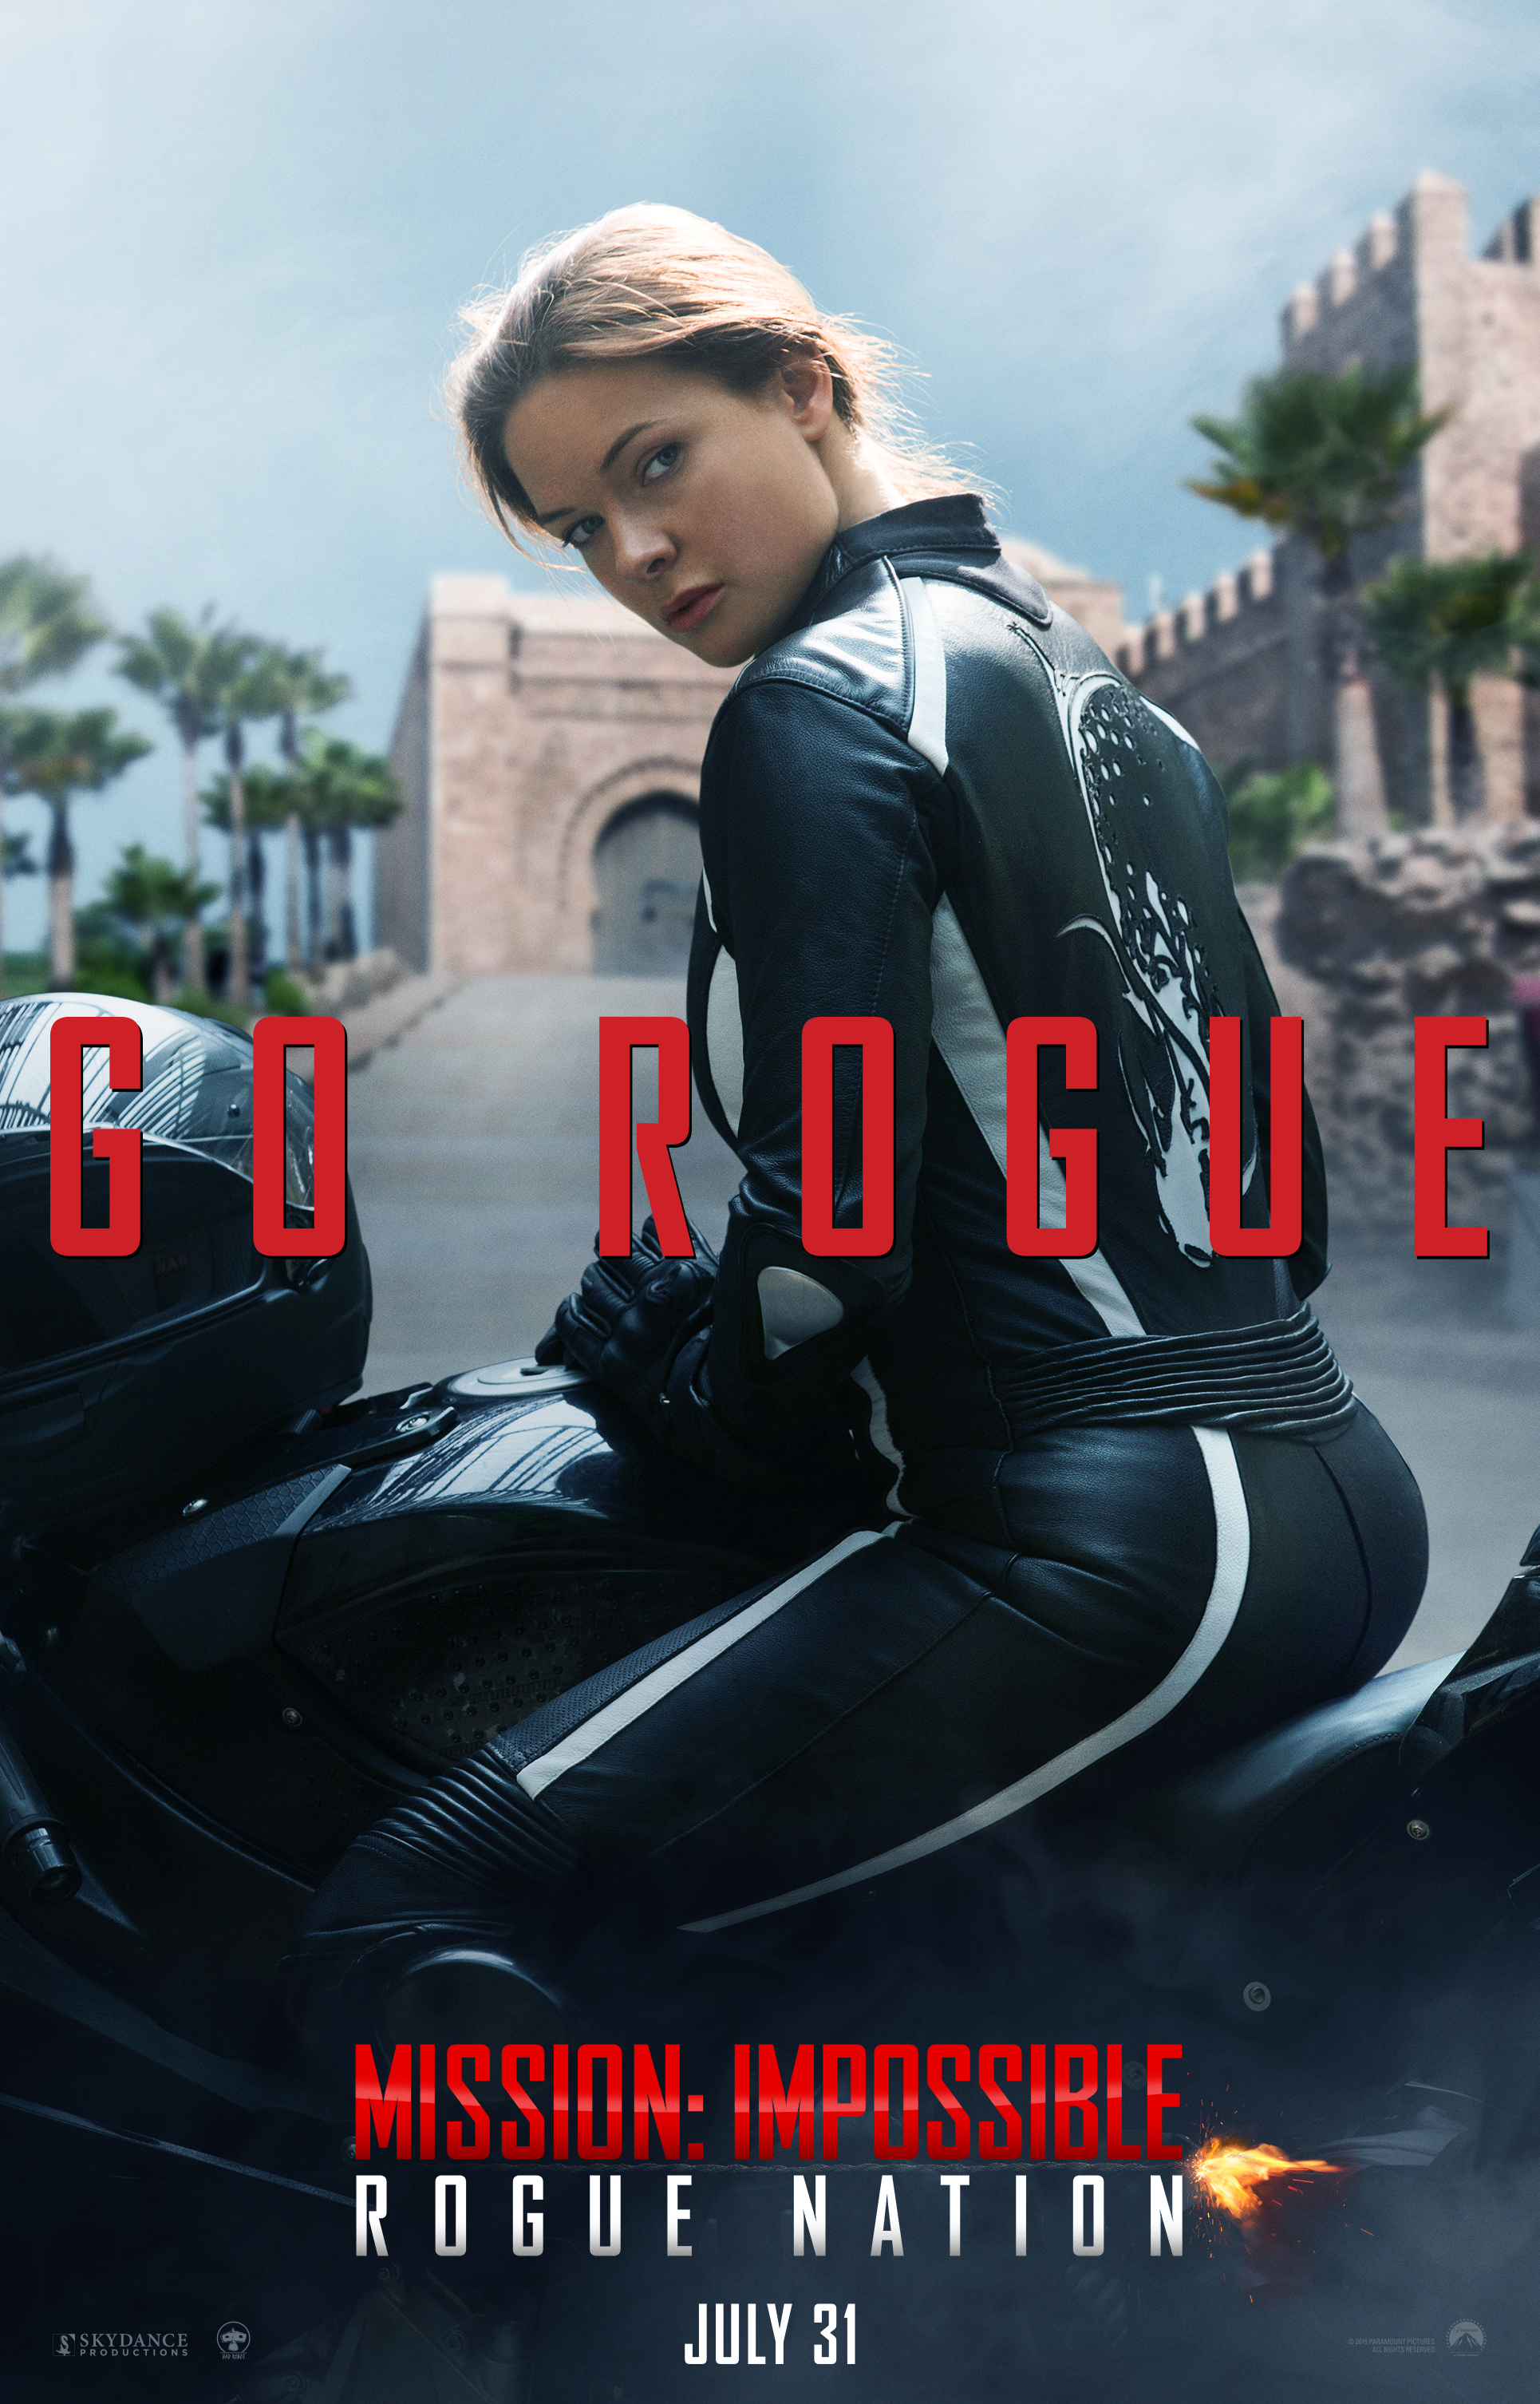 Mission Impossible Rogue Nation poster 5.jpg